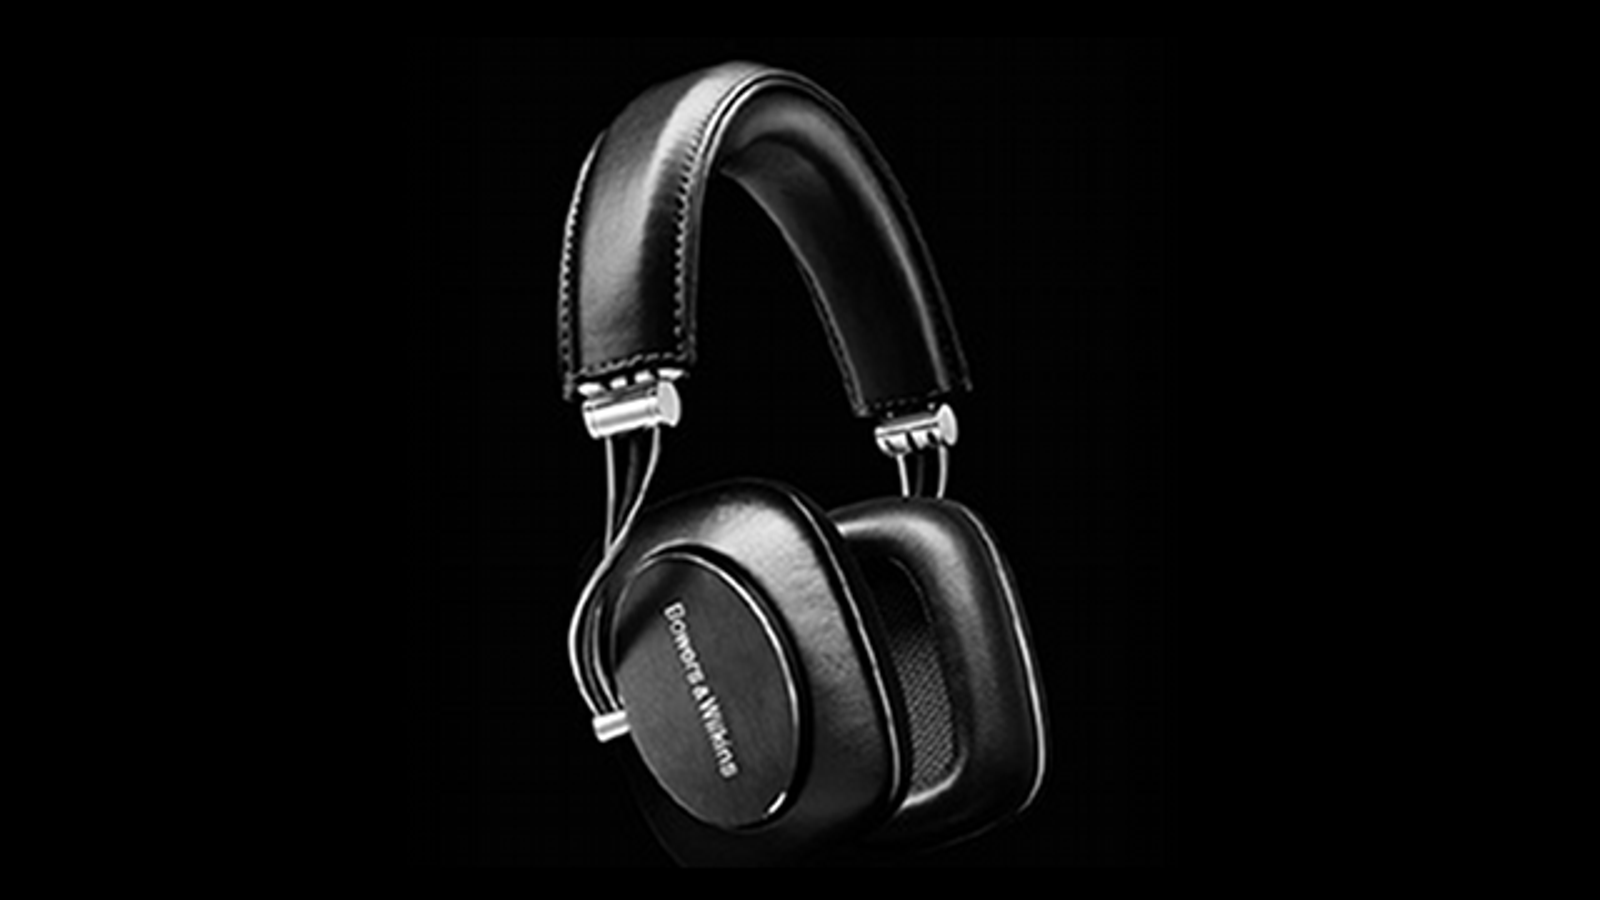 headphones lightweight wireless